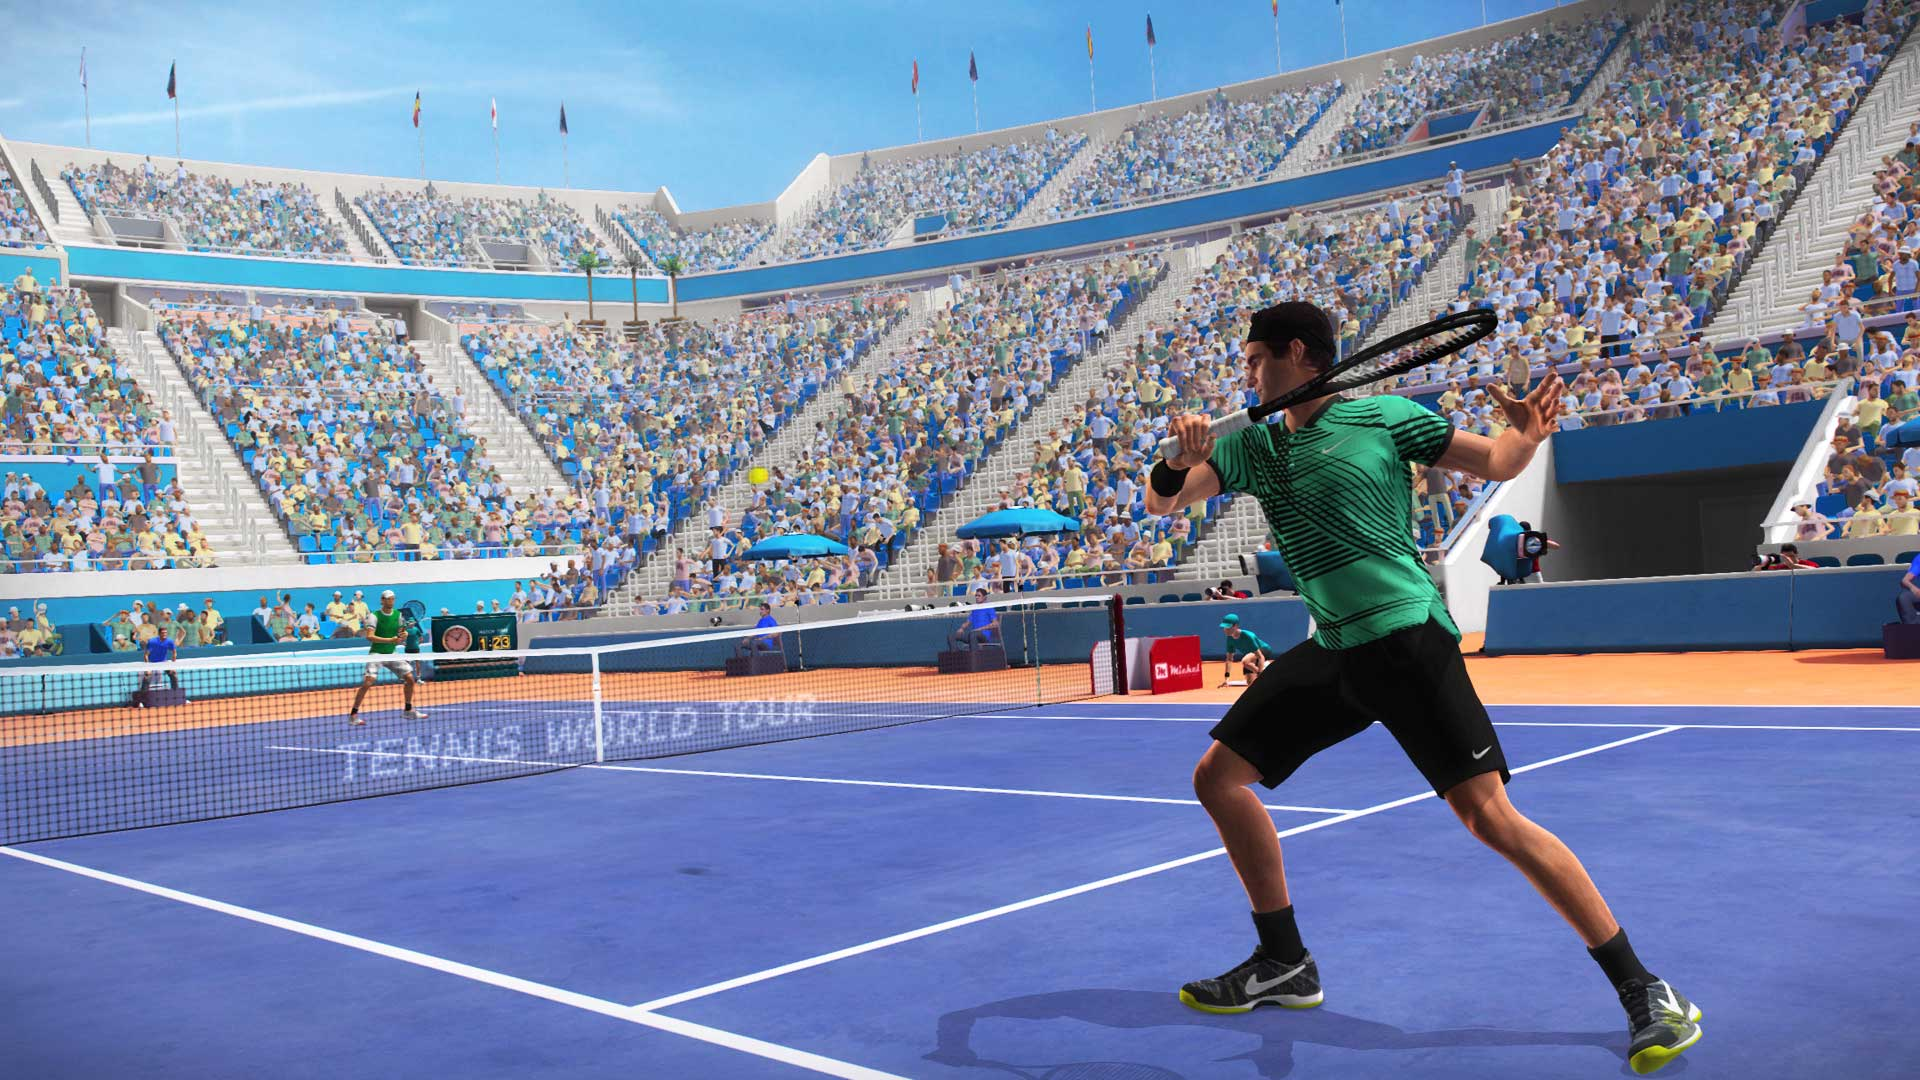 ba4873fc7c3 Sports Tennis Simulation. +. There was an error trying to play this video.  Please make sure your browser is up to date.